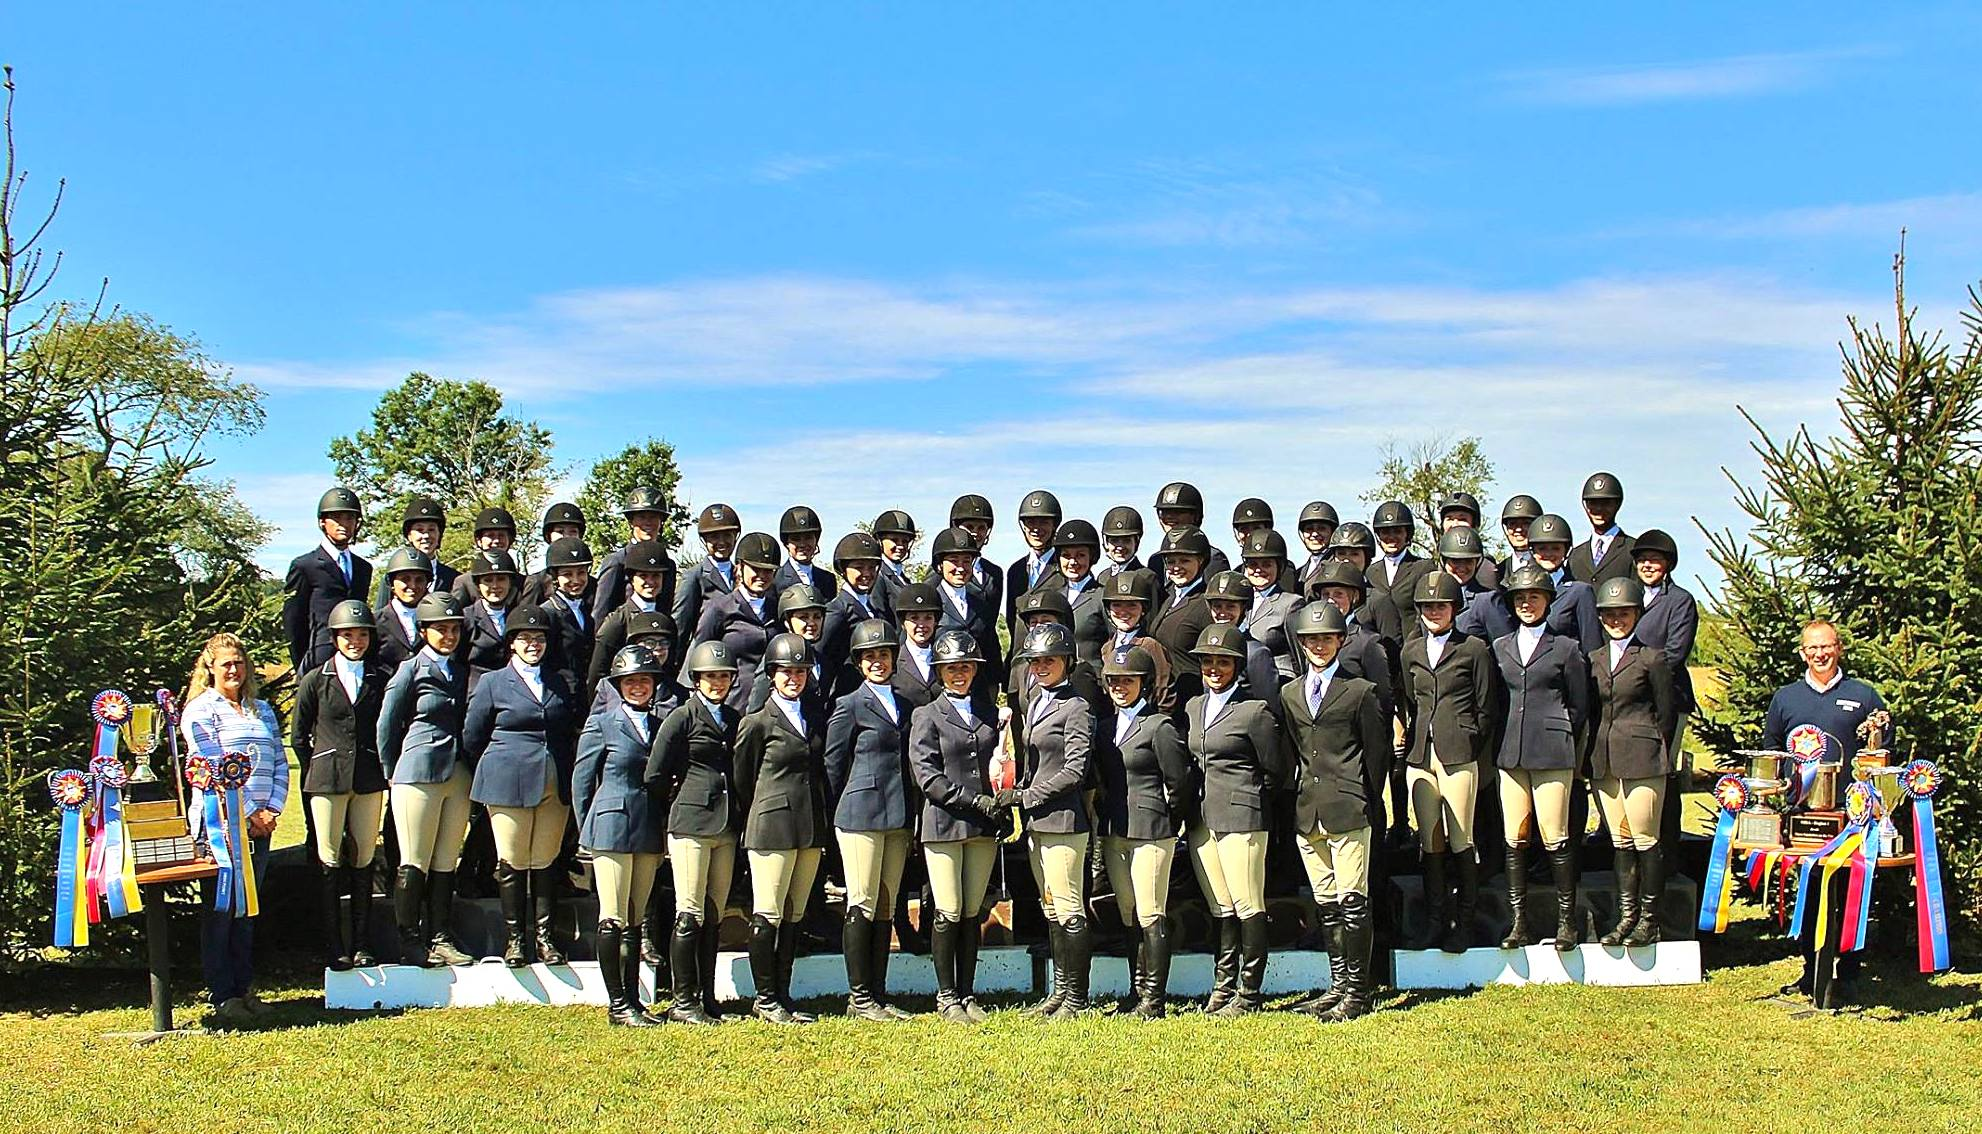 The Centenary IHSA team with coaches Heather Clark and Michael Dowling .  Photo courtesy of Centenary University Equestrian